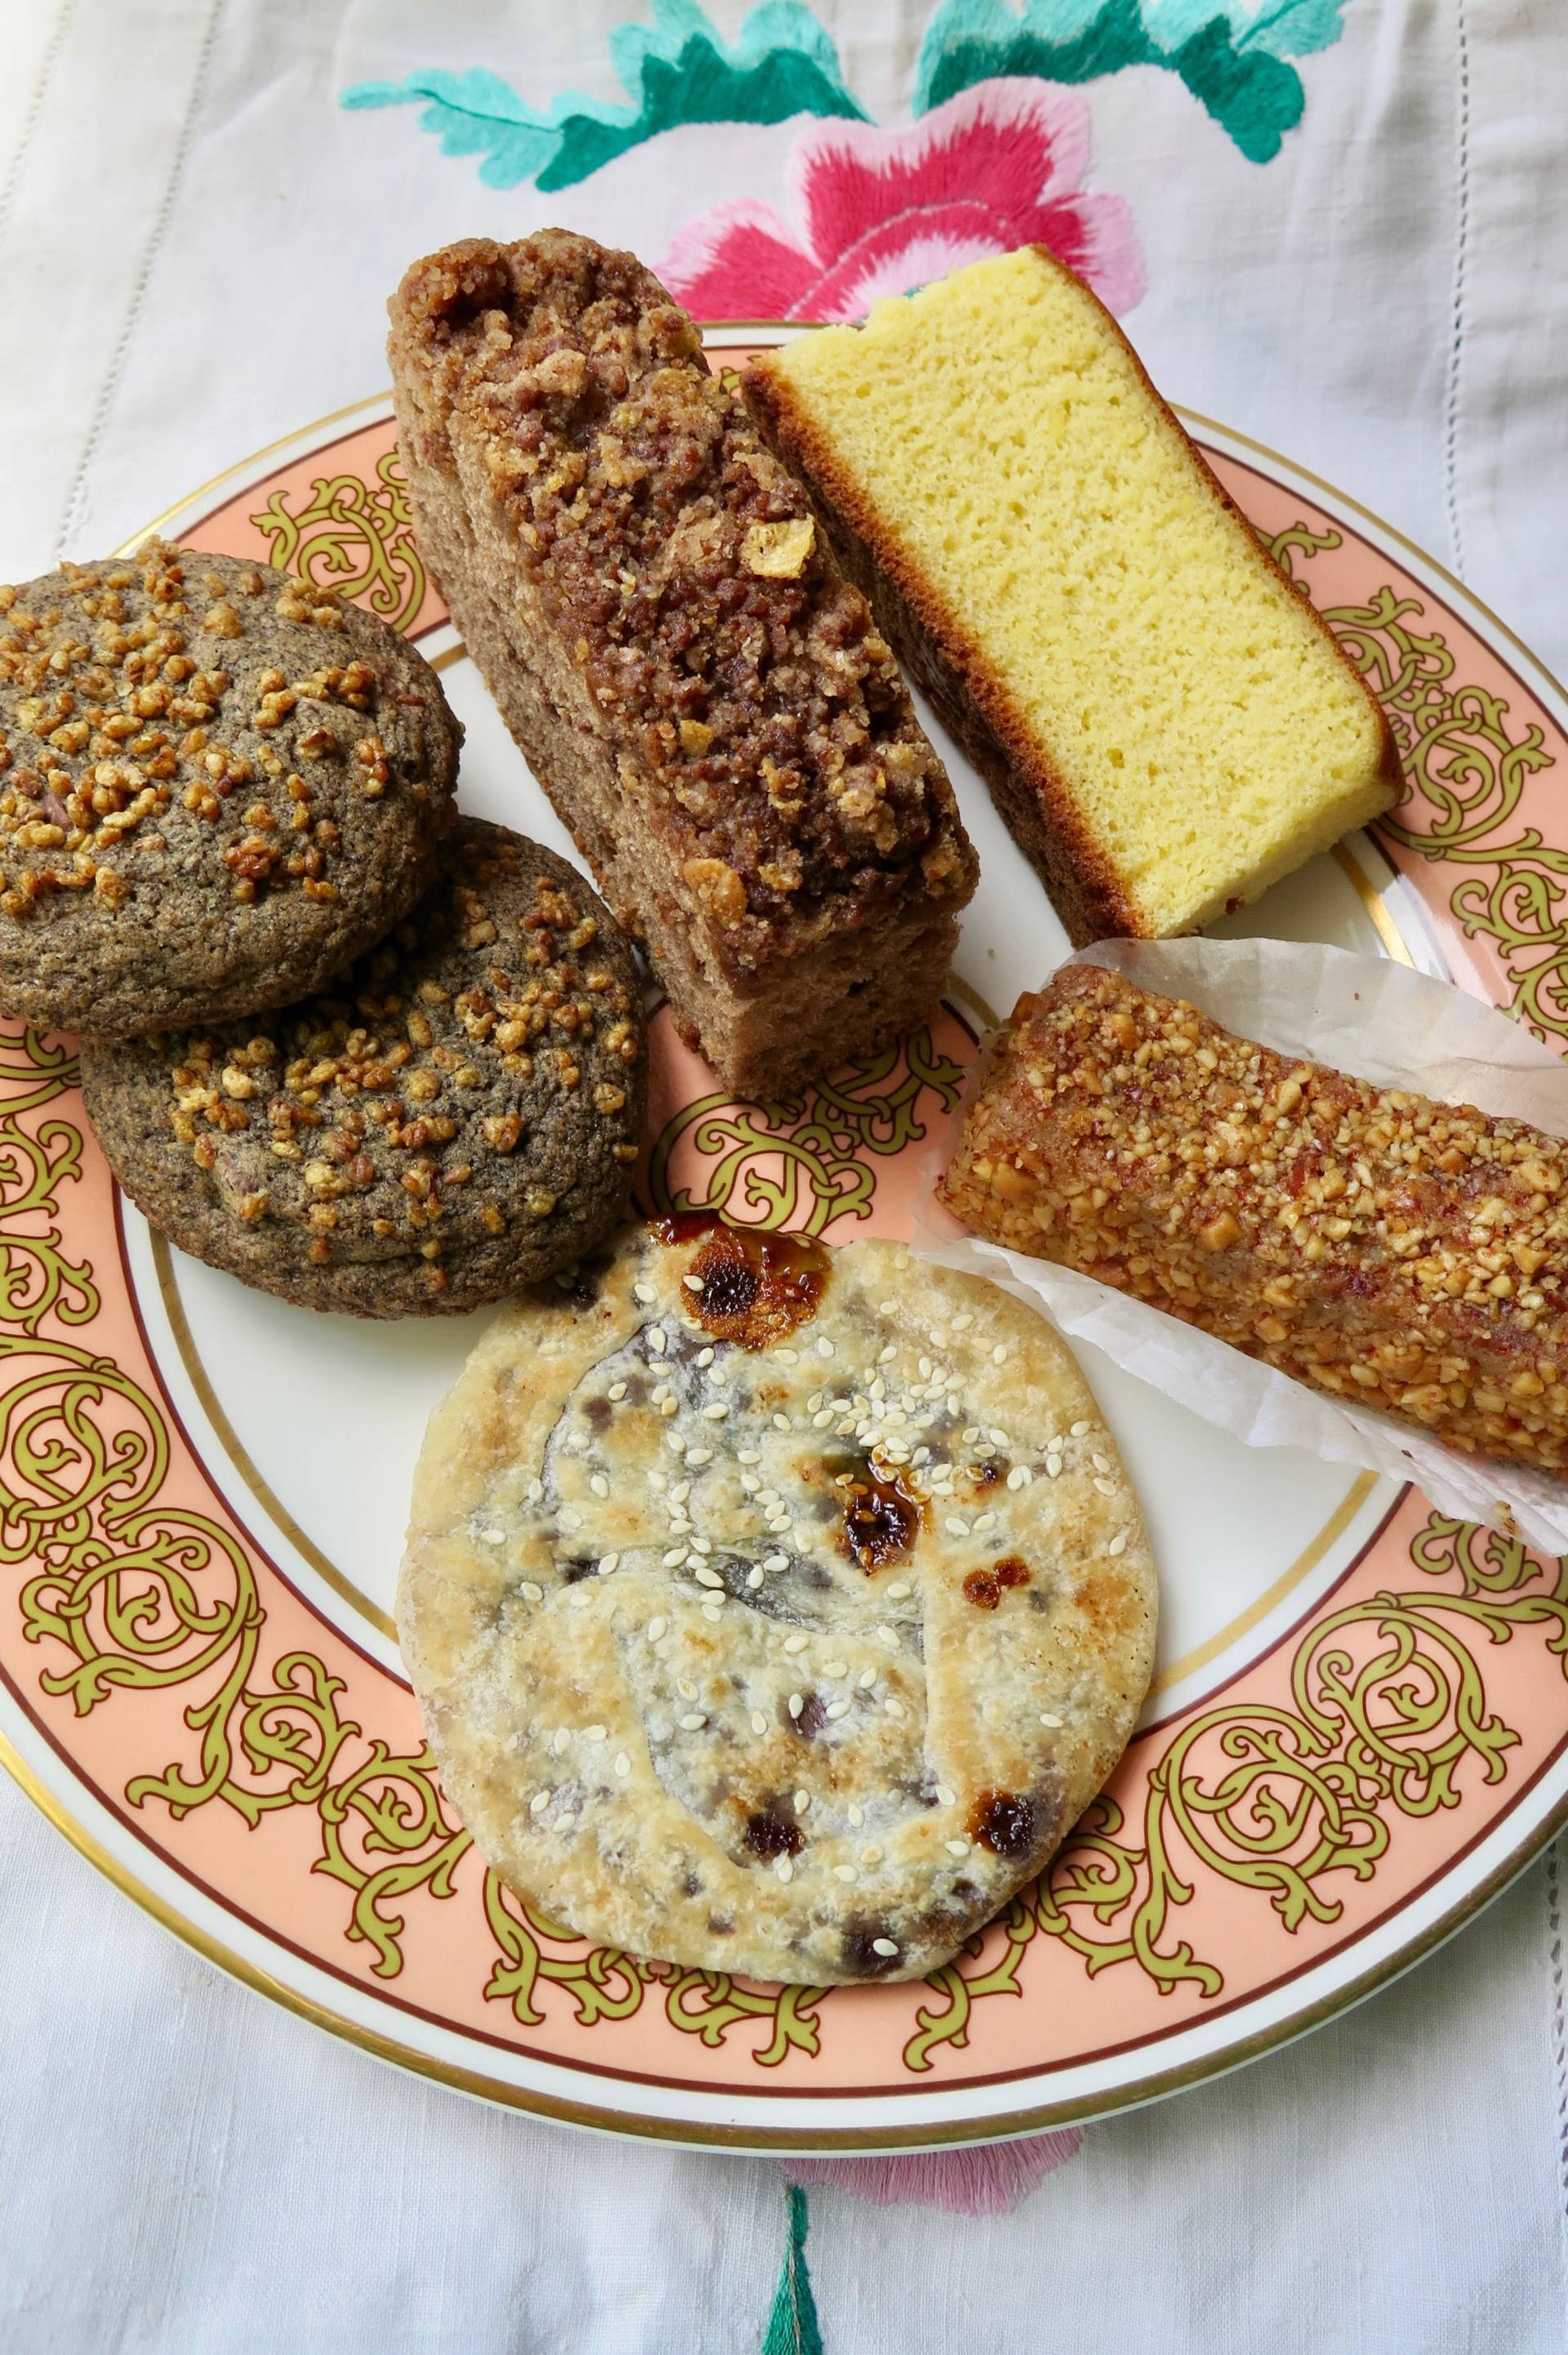 A sampling of baked goods in the Pastry Box from Breadbelly.